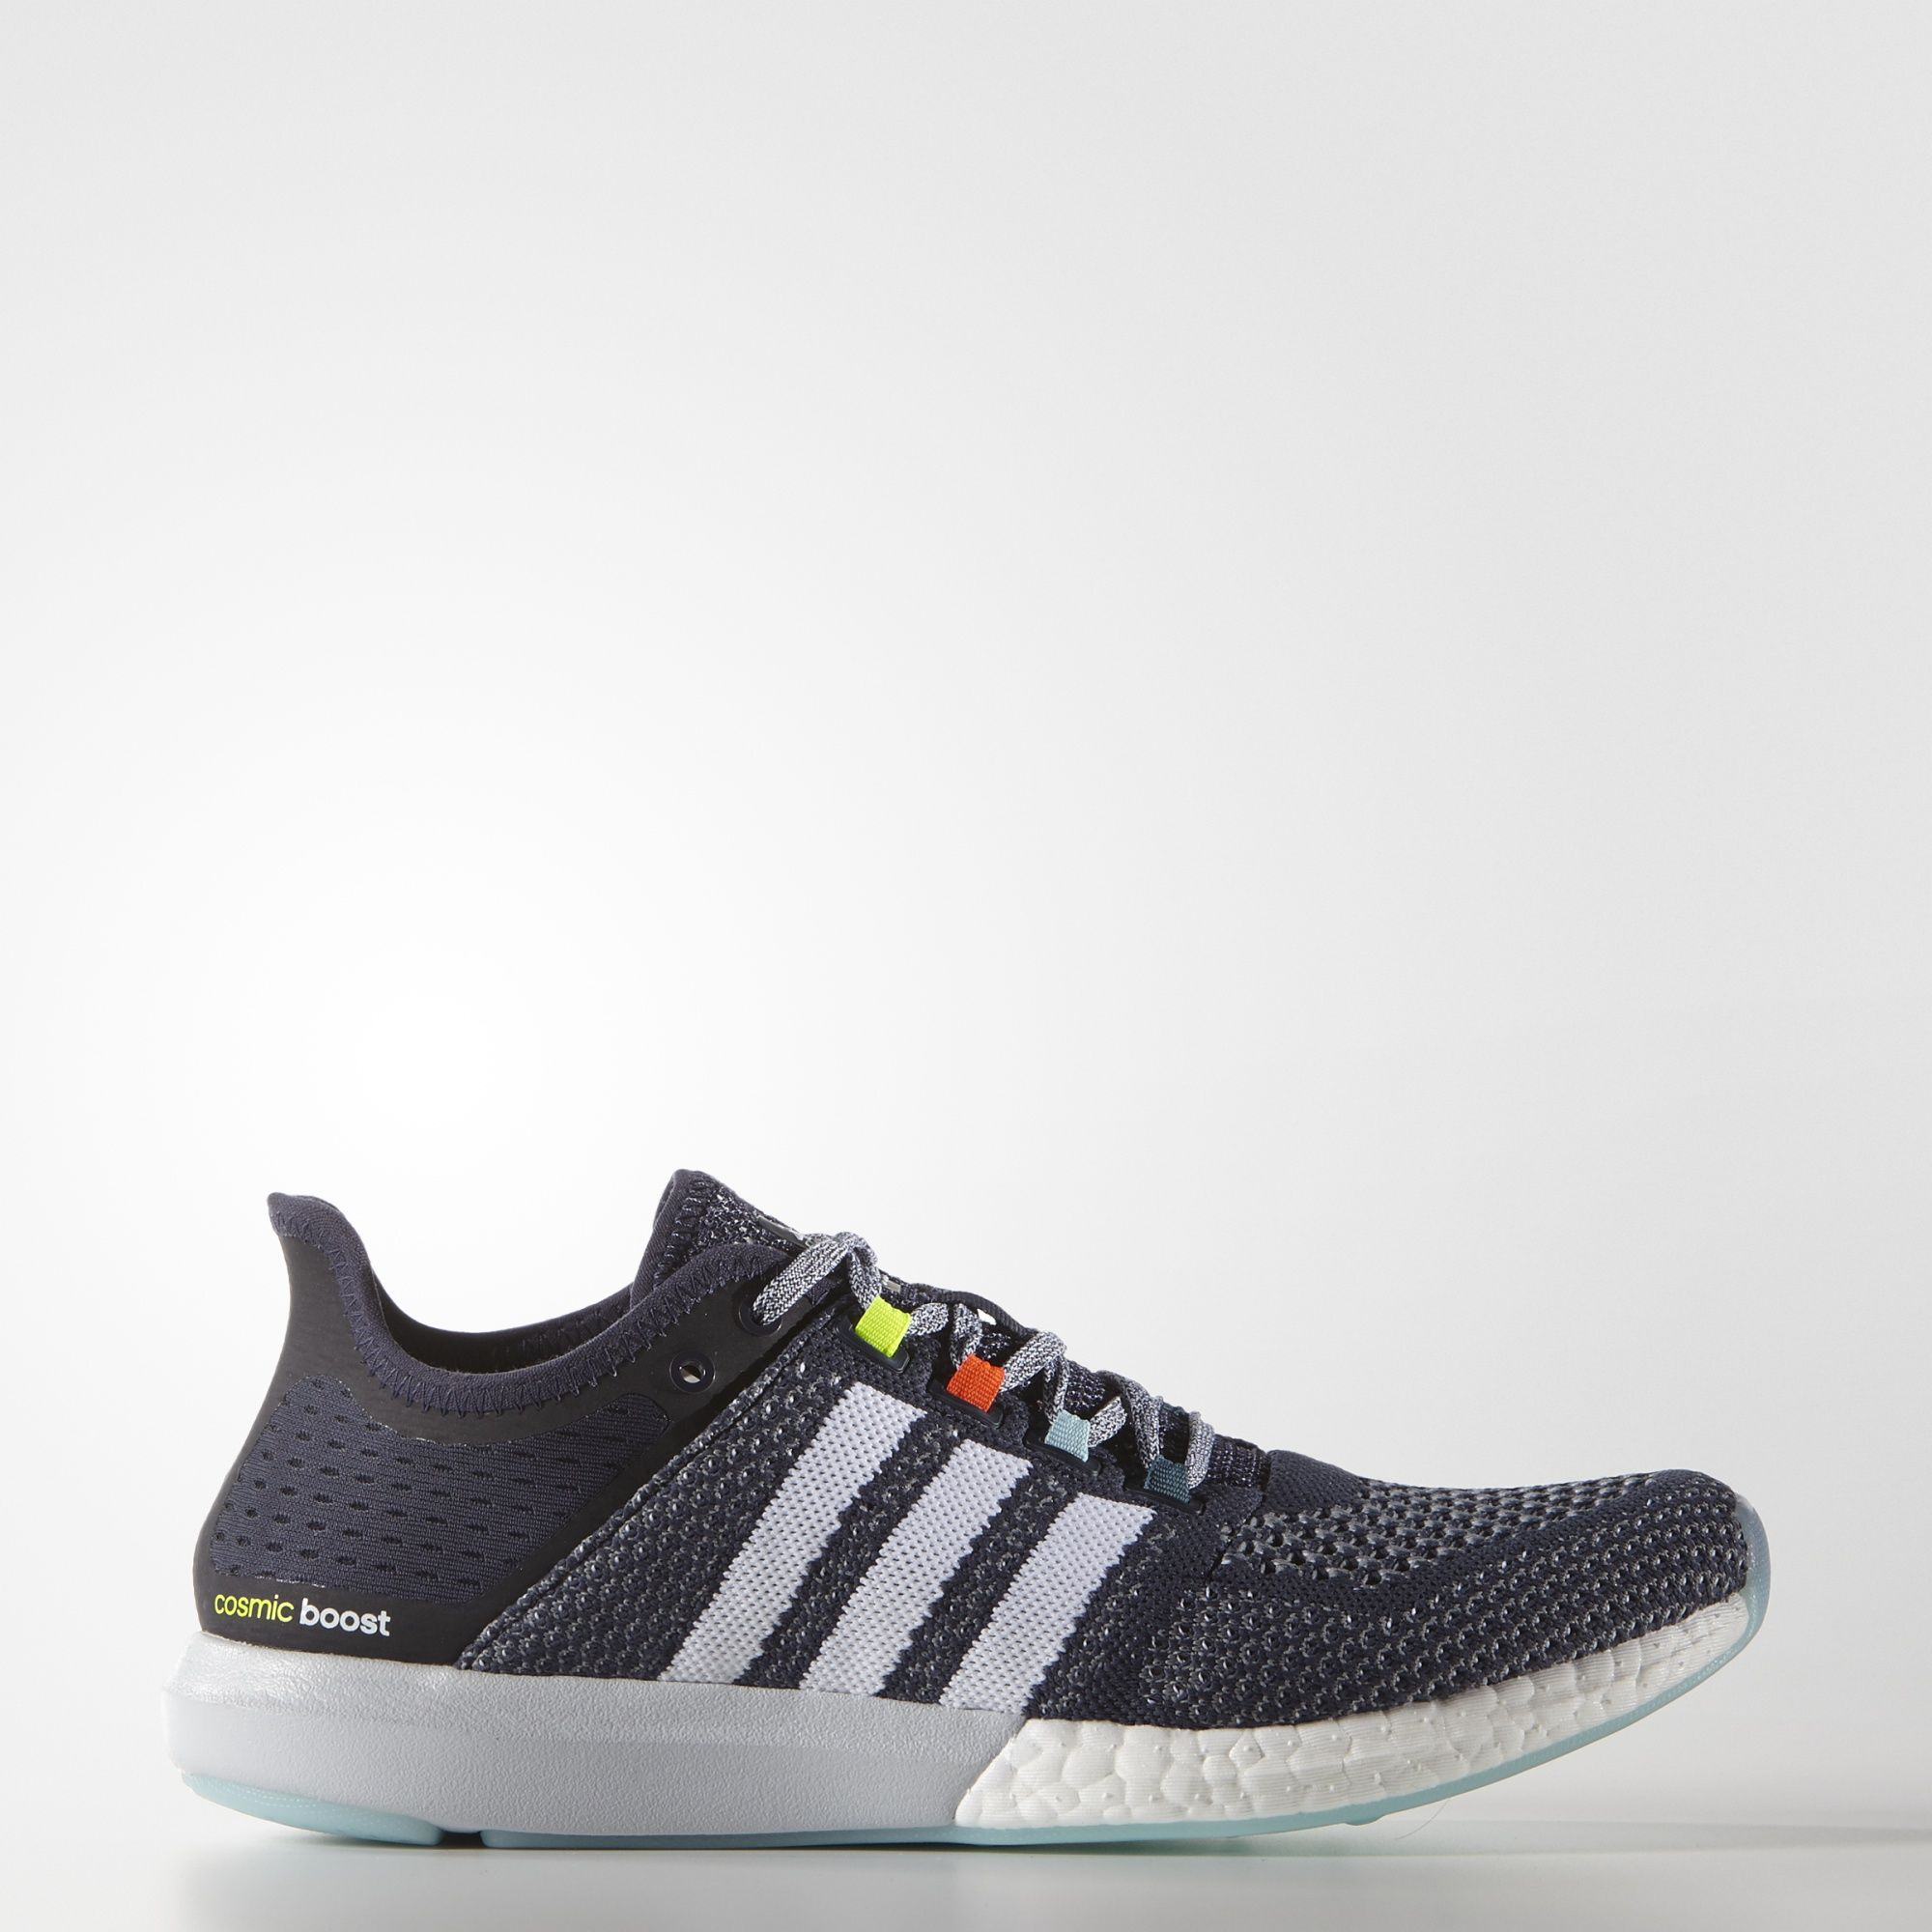 adidas cosmic boost black